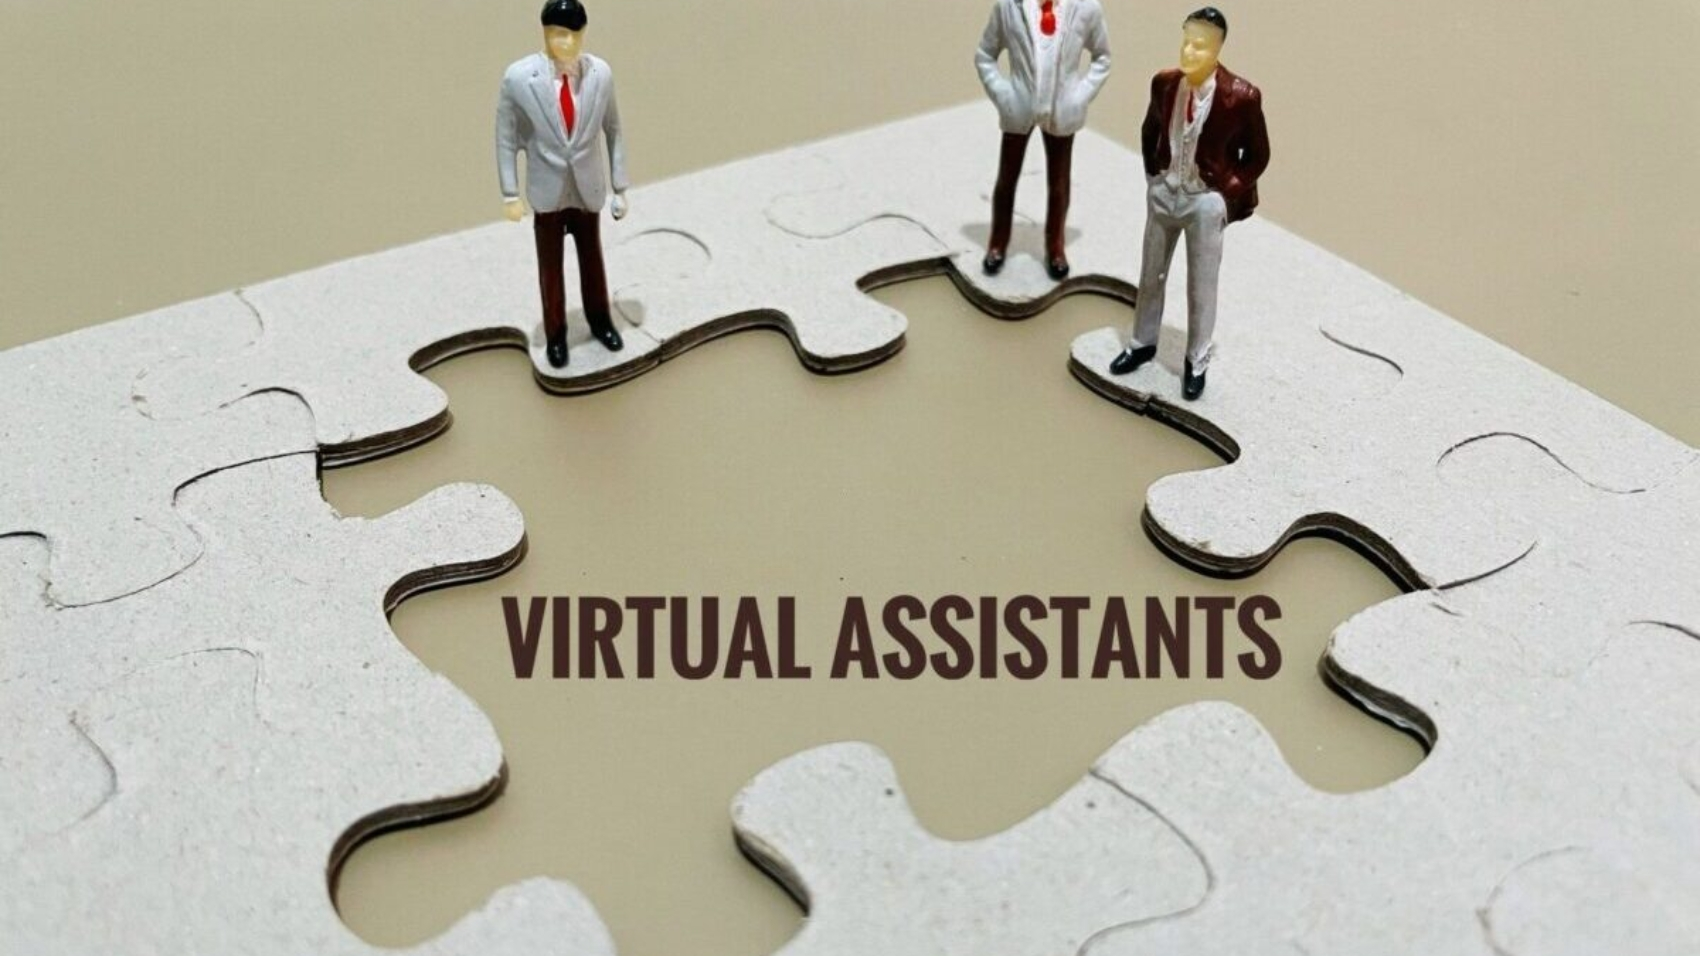 hire a virtual assistant and enjoy the perks of services